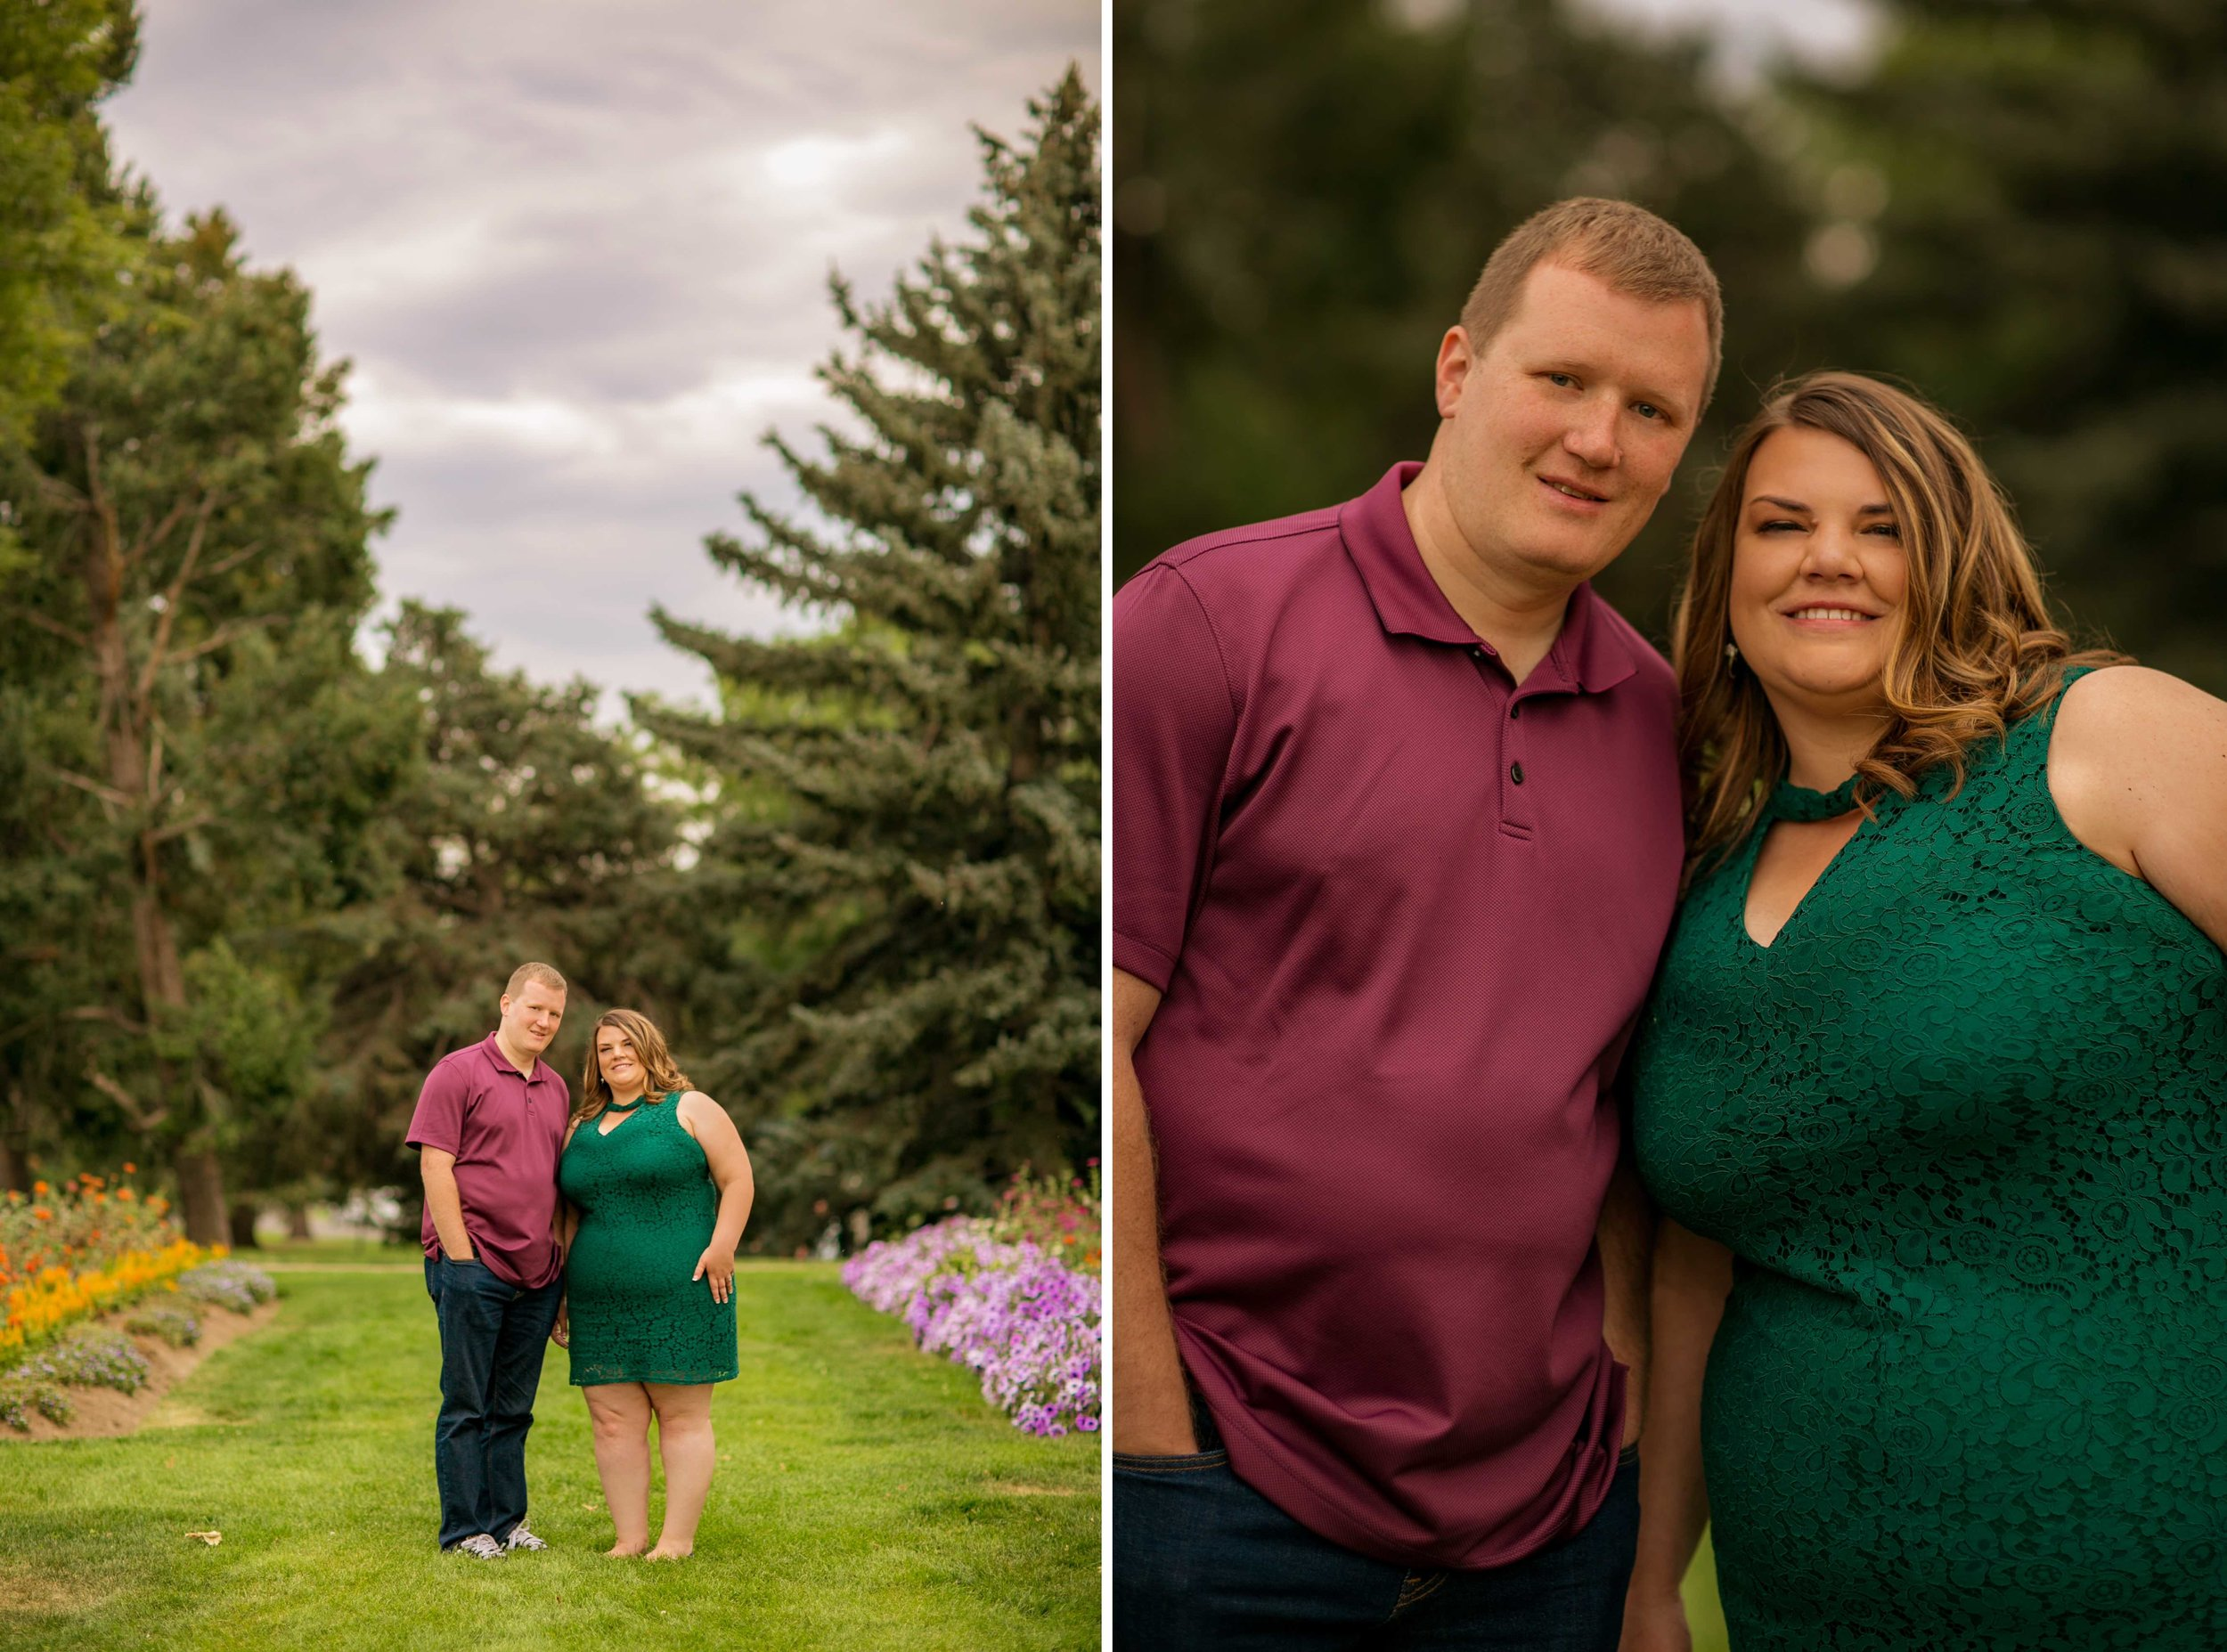 _cheesmanpark_coloradoweddingphotographer_www.kisaconrad.com_20170820-607A8648 copy.jpeg